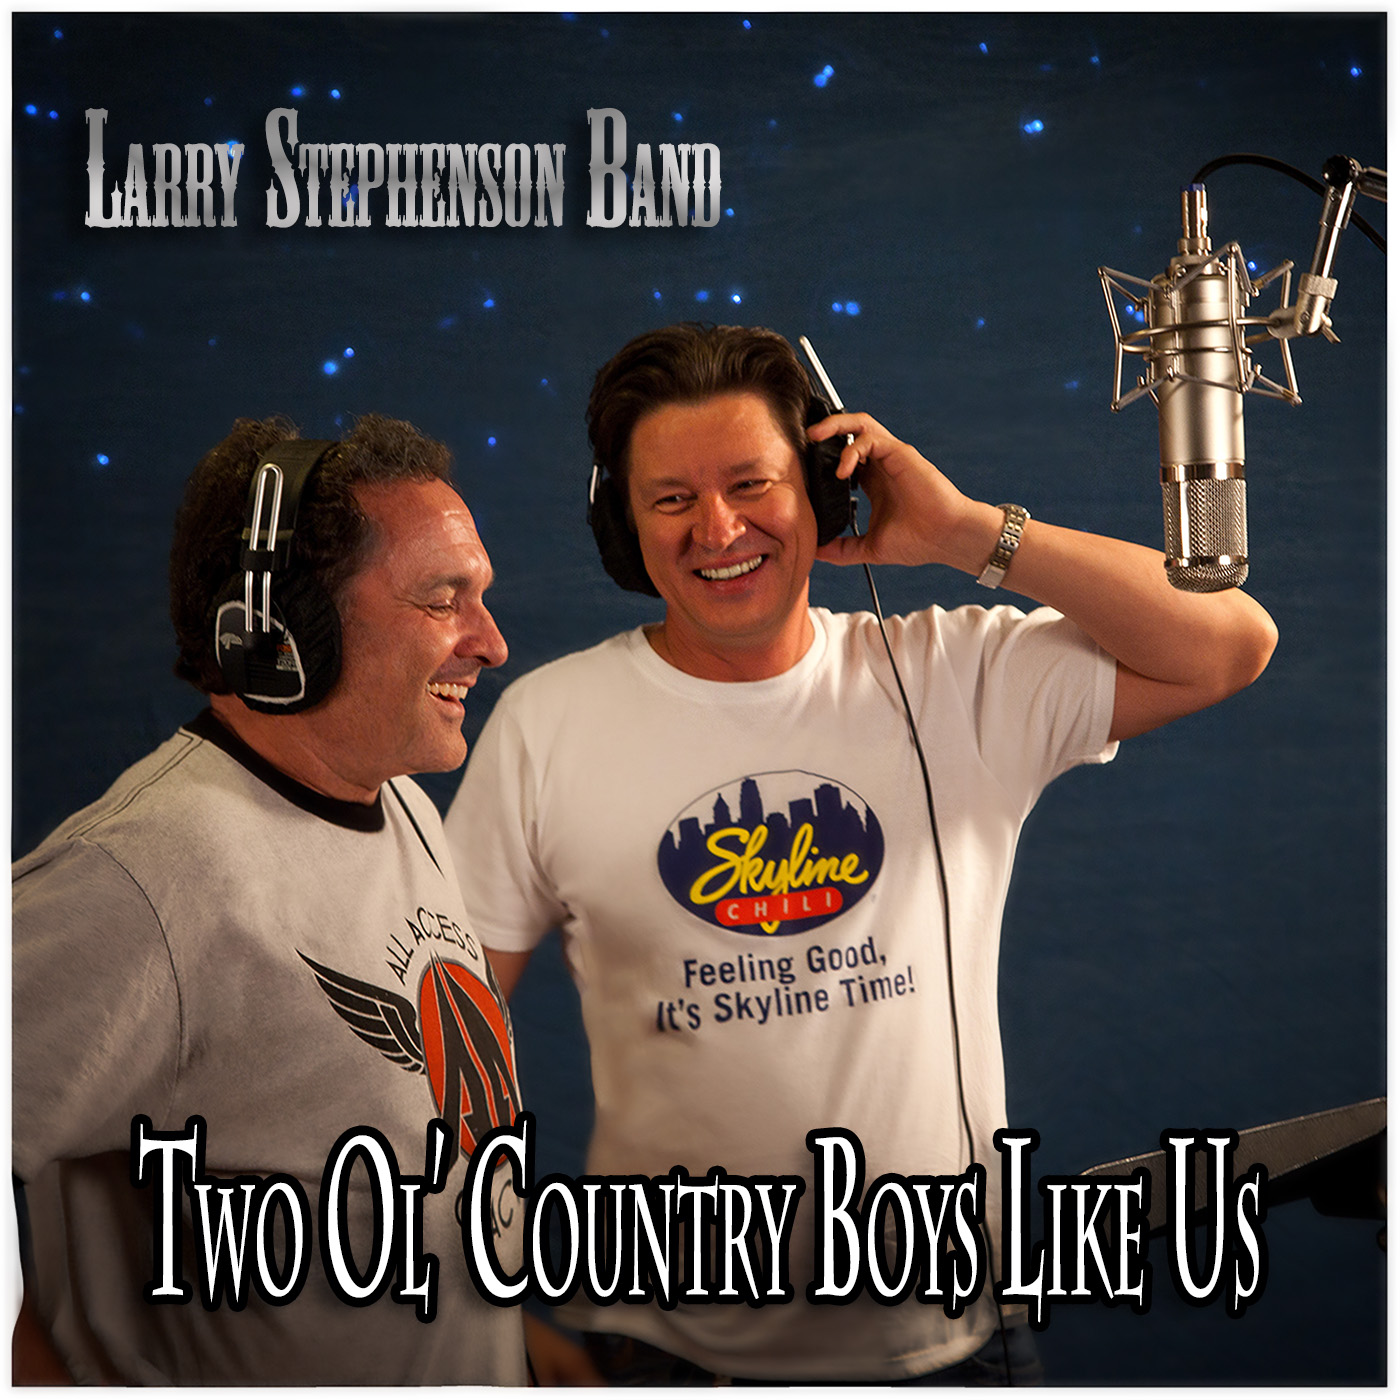 Two Ol' Country Boys Like Us Single release